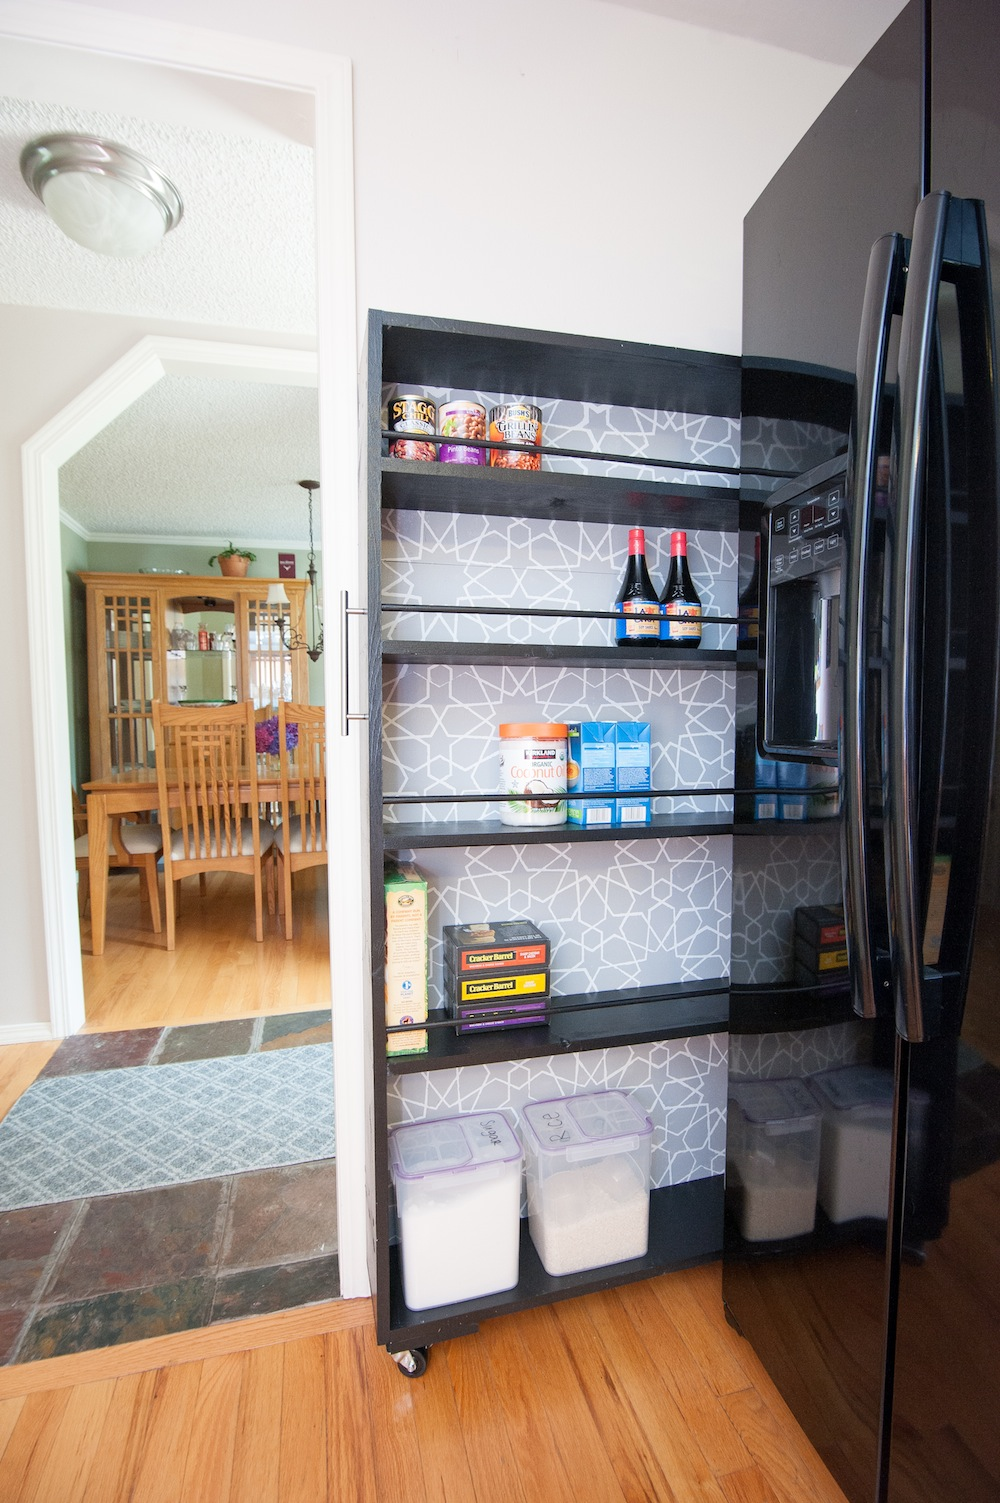 The space saving rolling pantry a diy tutorial build realty for Diy rolling pantry shelves